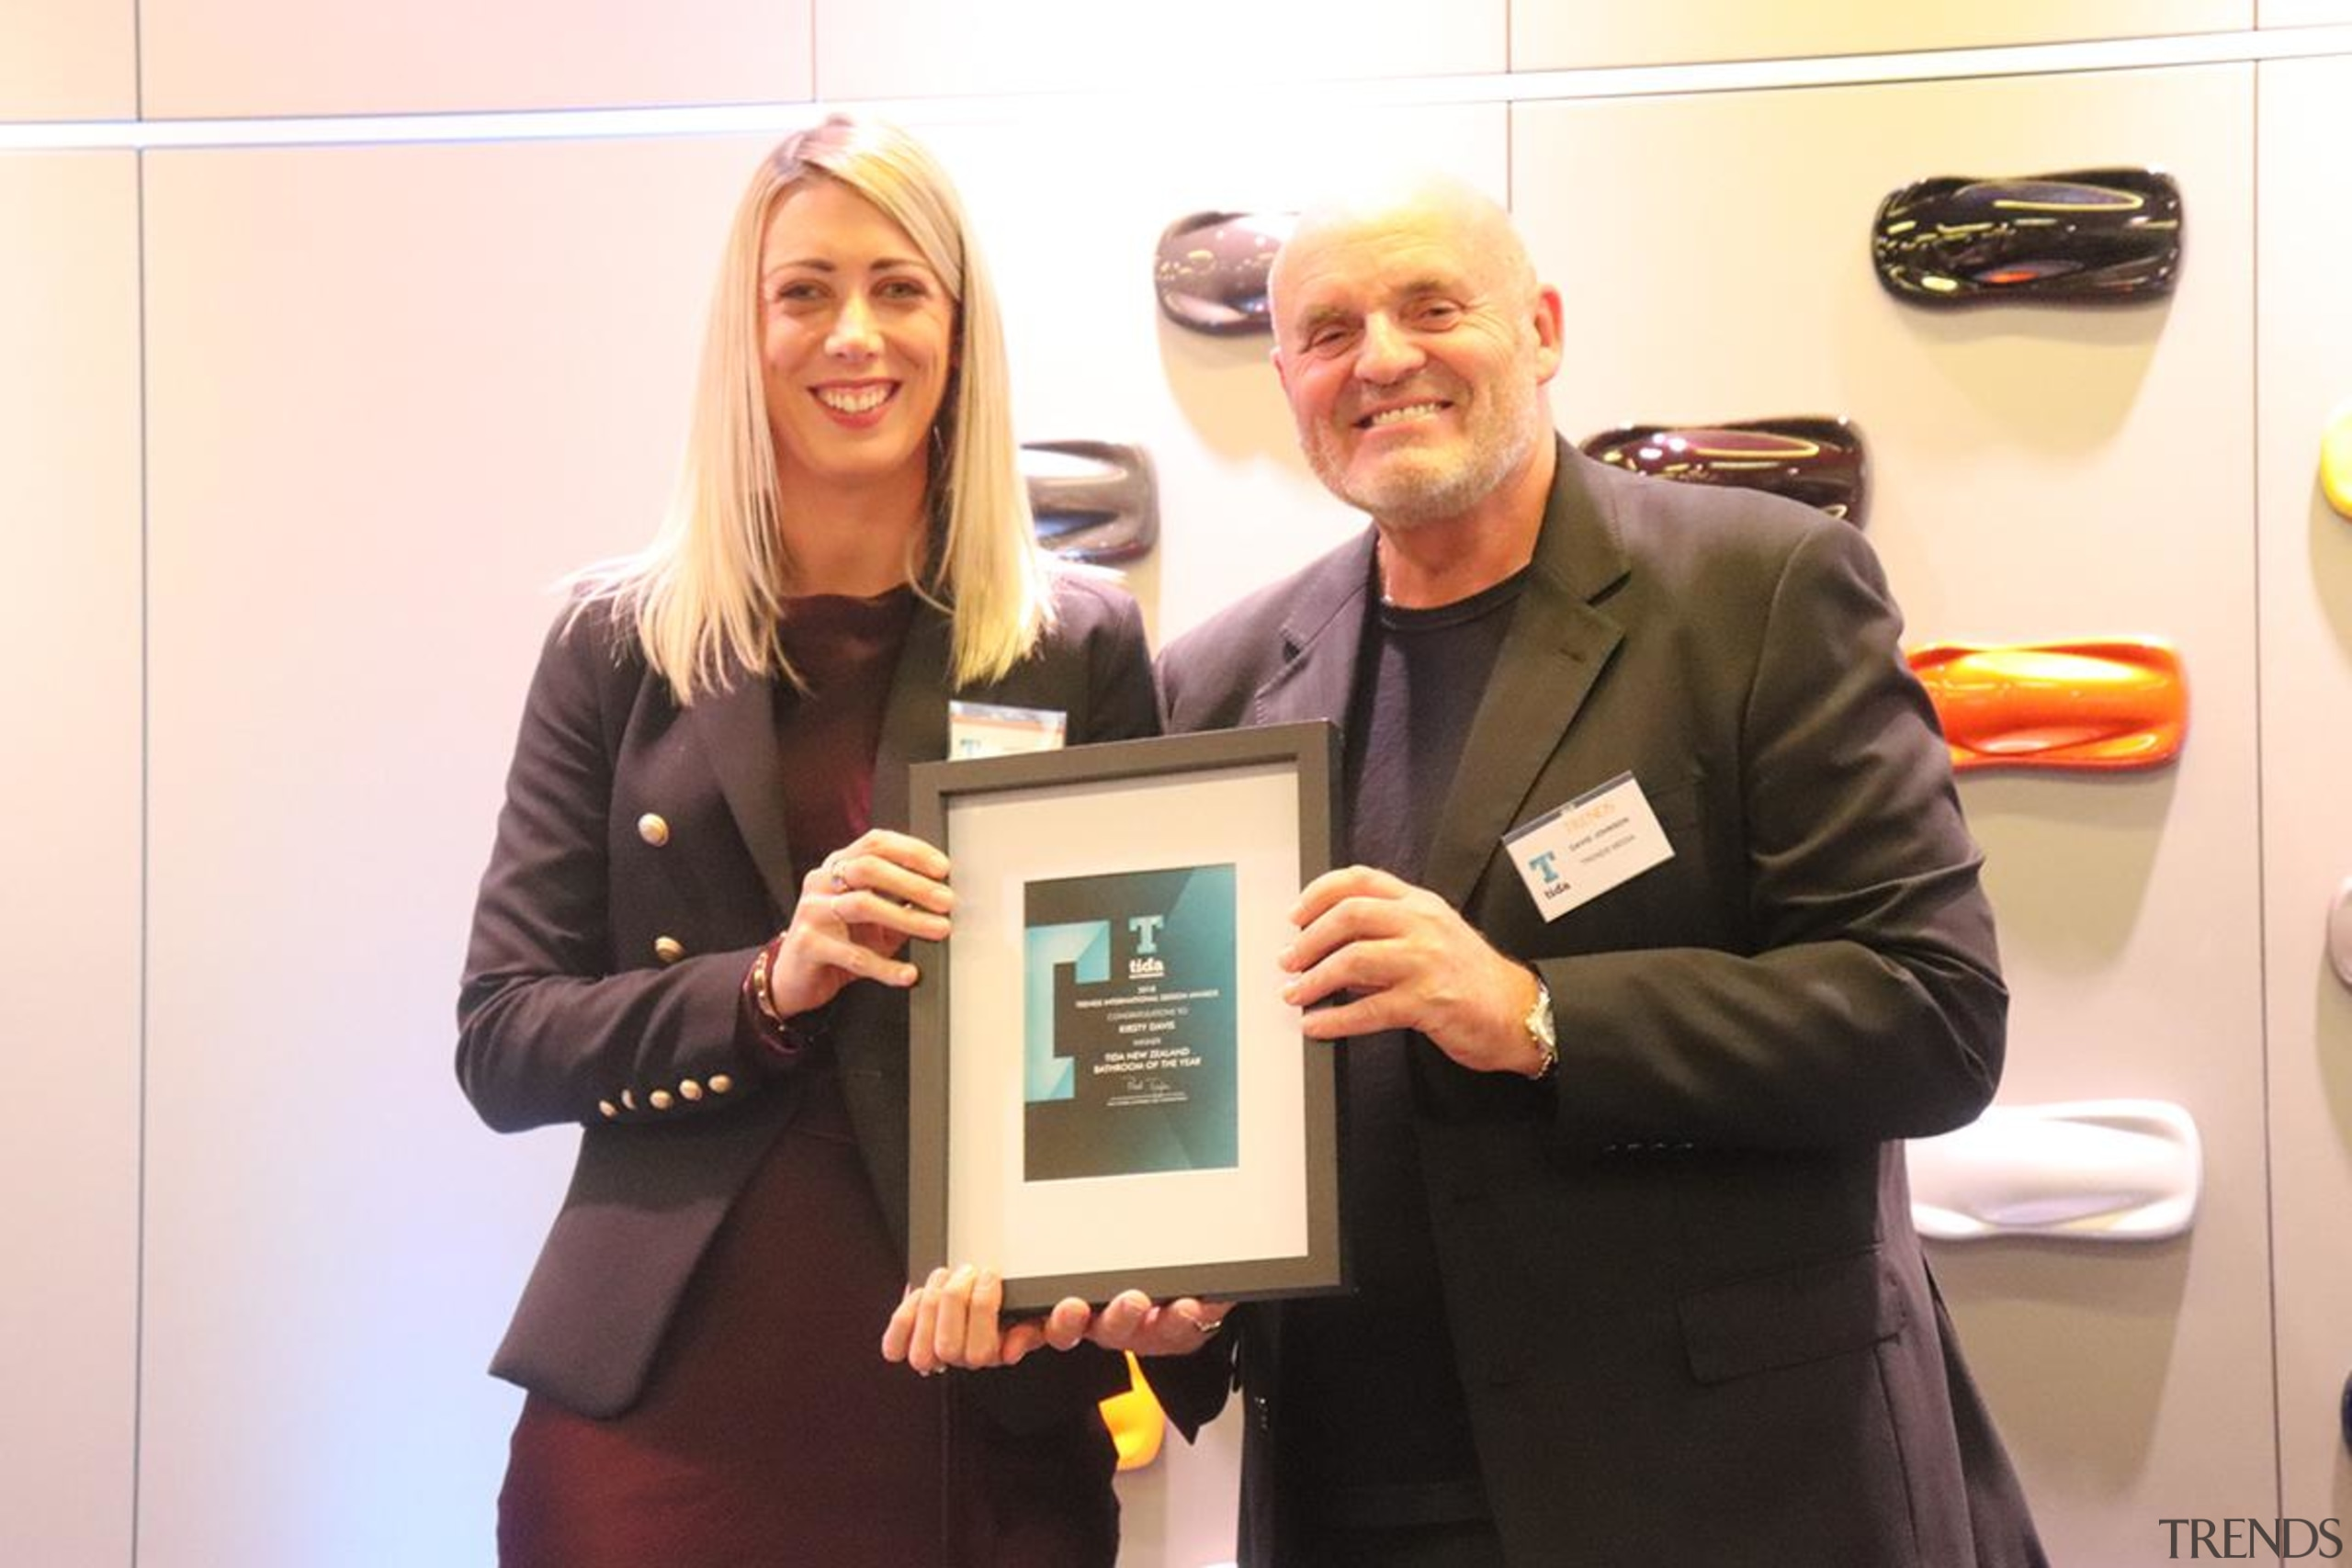 Kirsty Davis and David Johnson - award | award, electronic device, event, technology, white